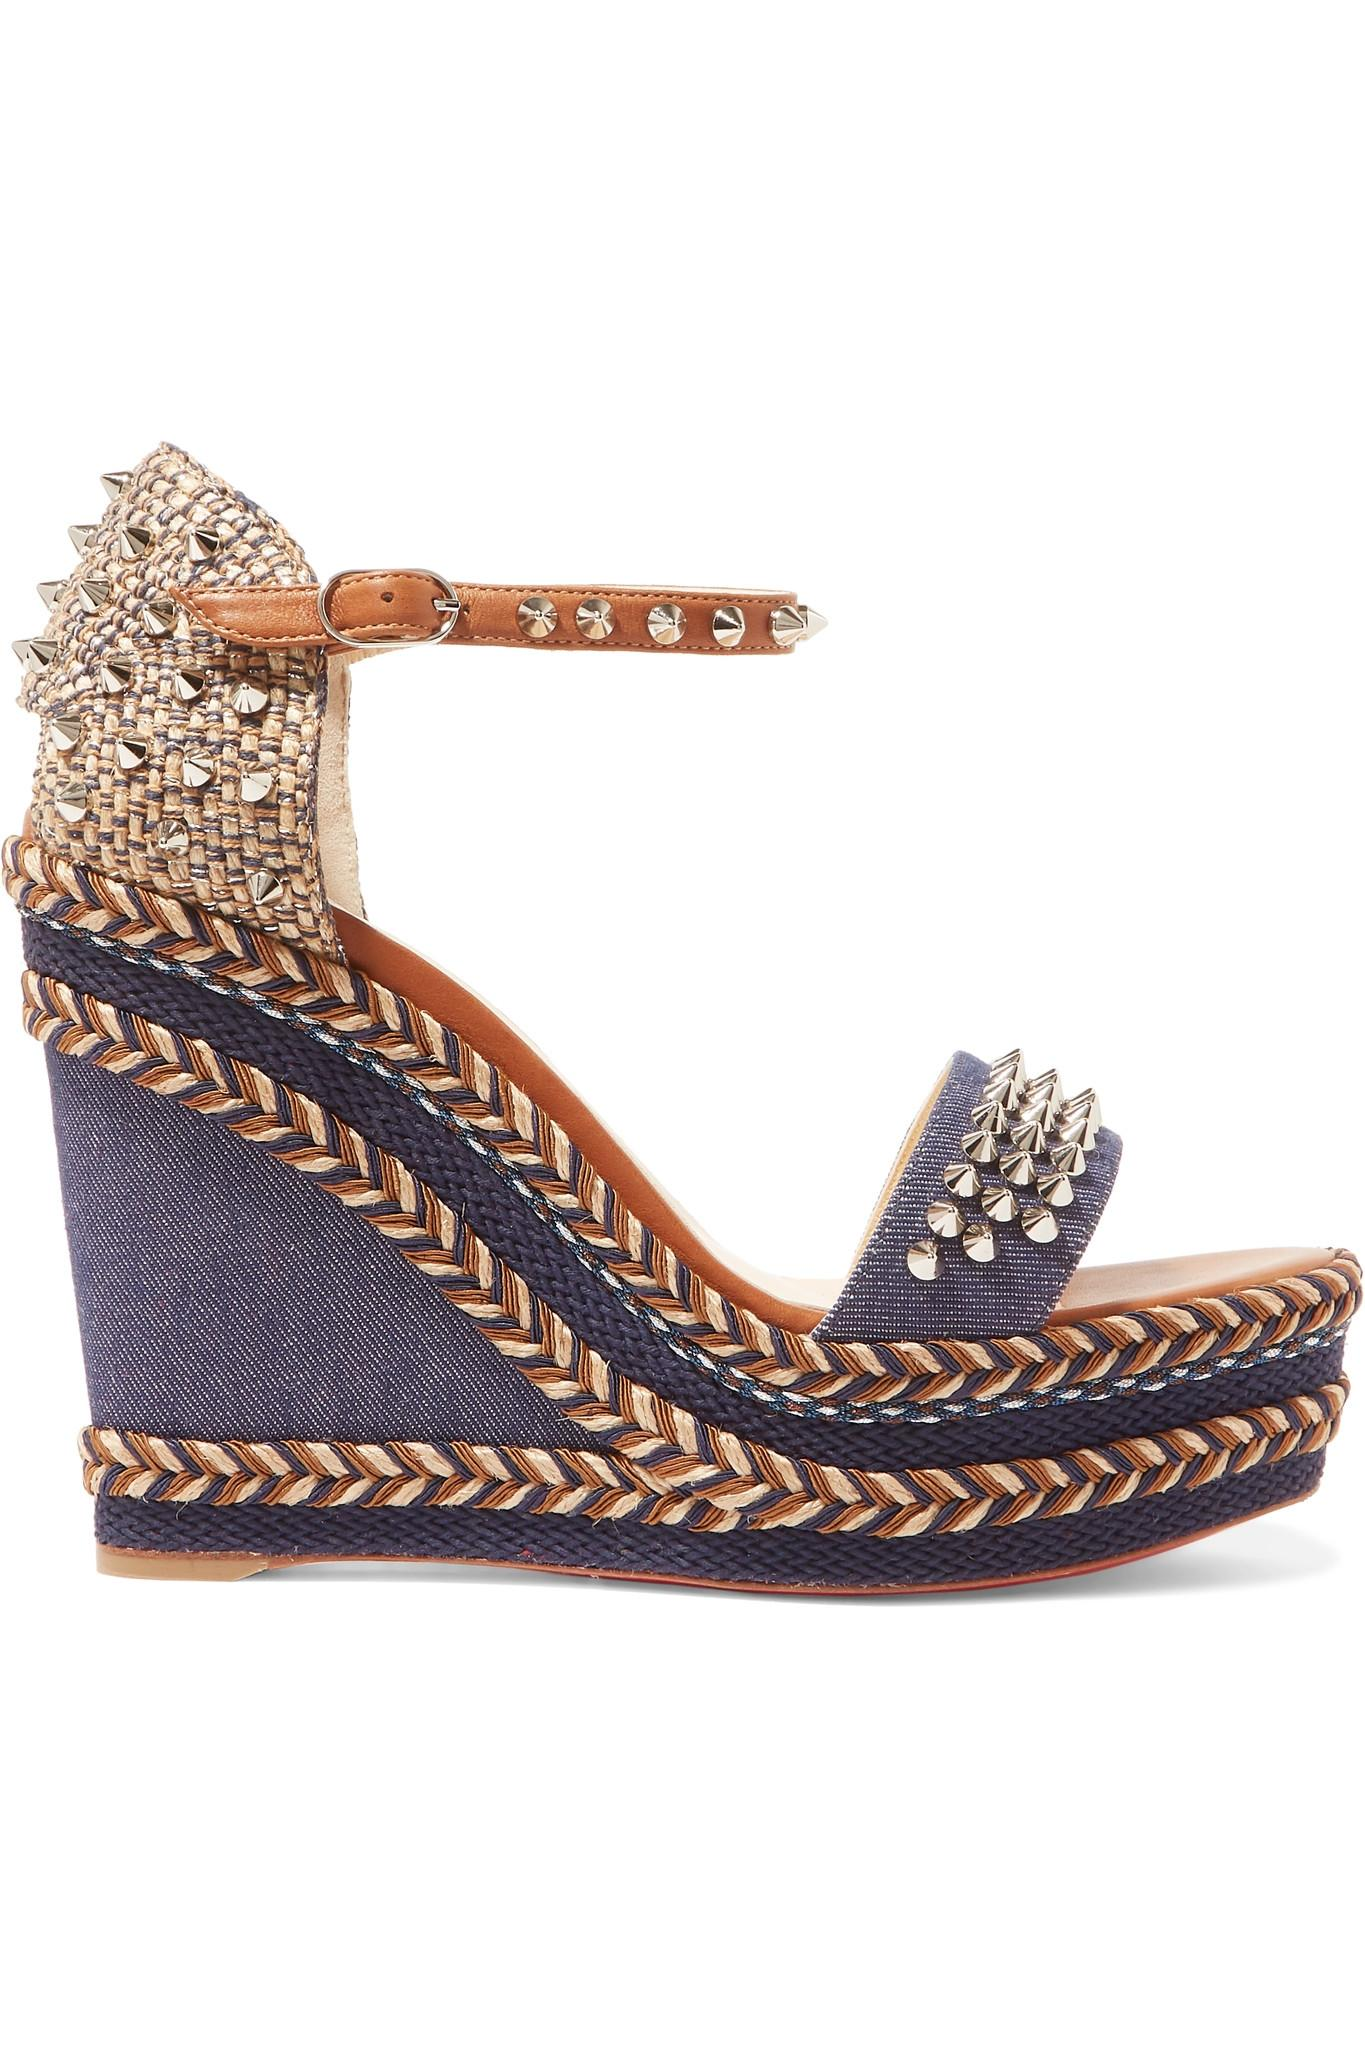 69c0d9dbdf6 Christian Louboutin. Women s Blue Madmonica 110 Spiked Denim And Leather  Espadrille Wedge Sandals